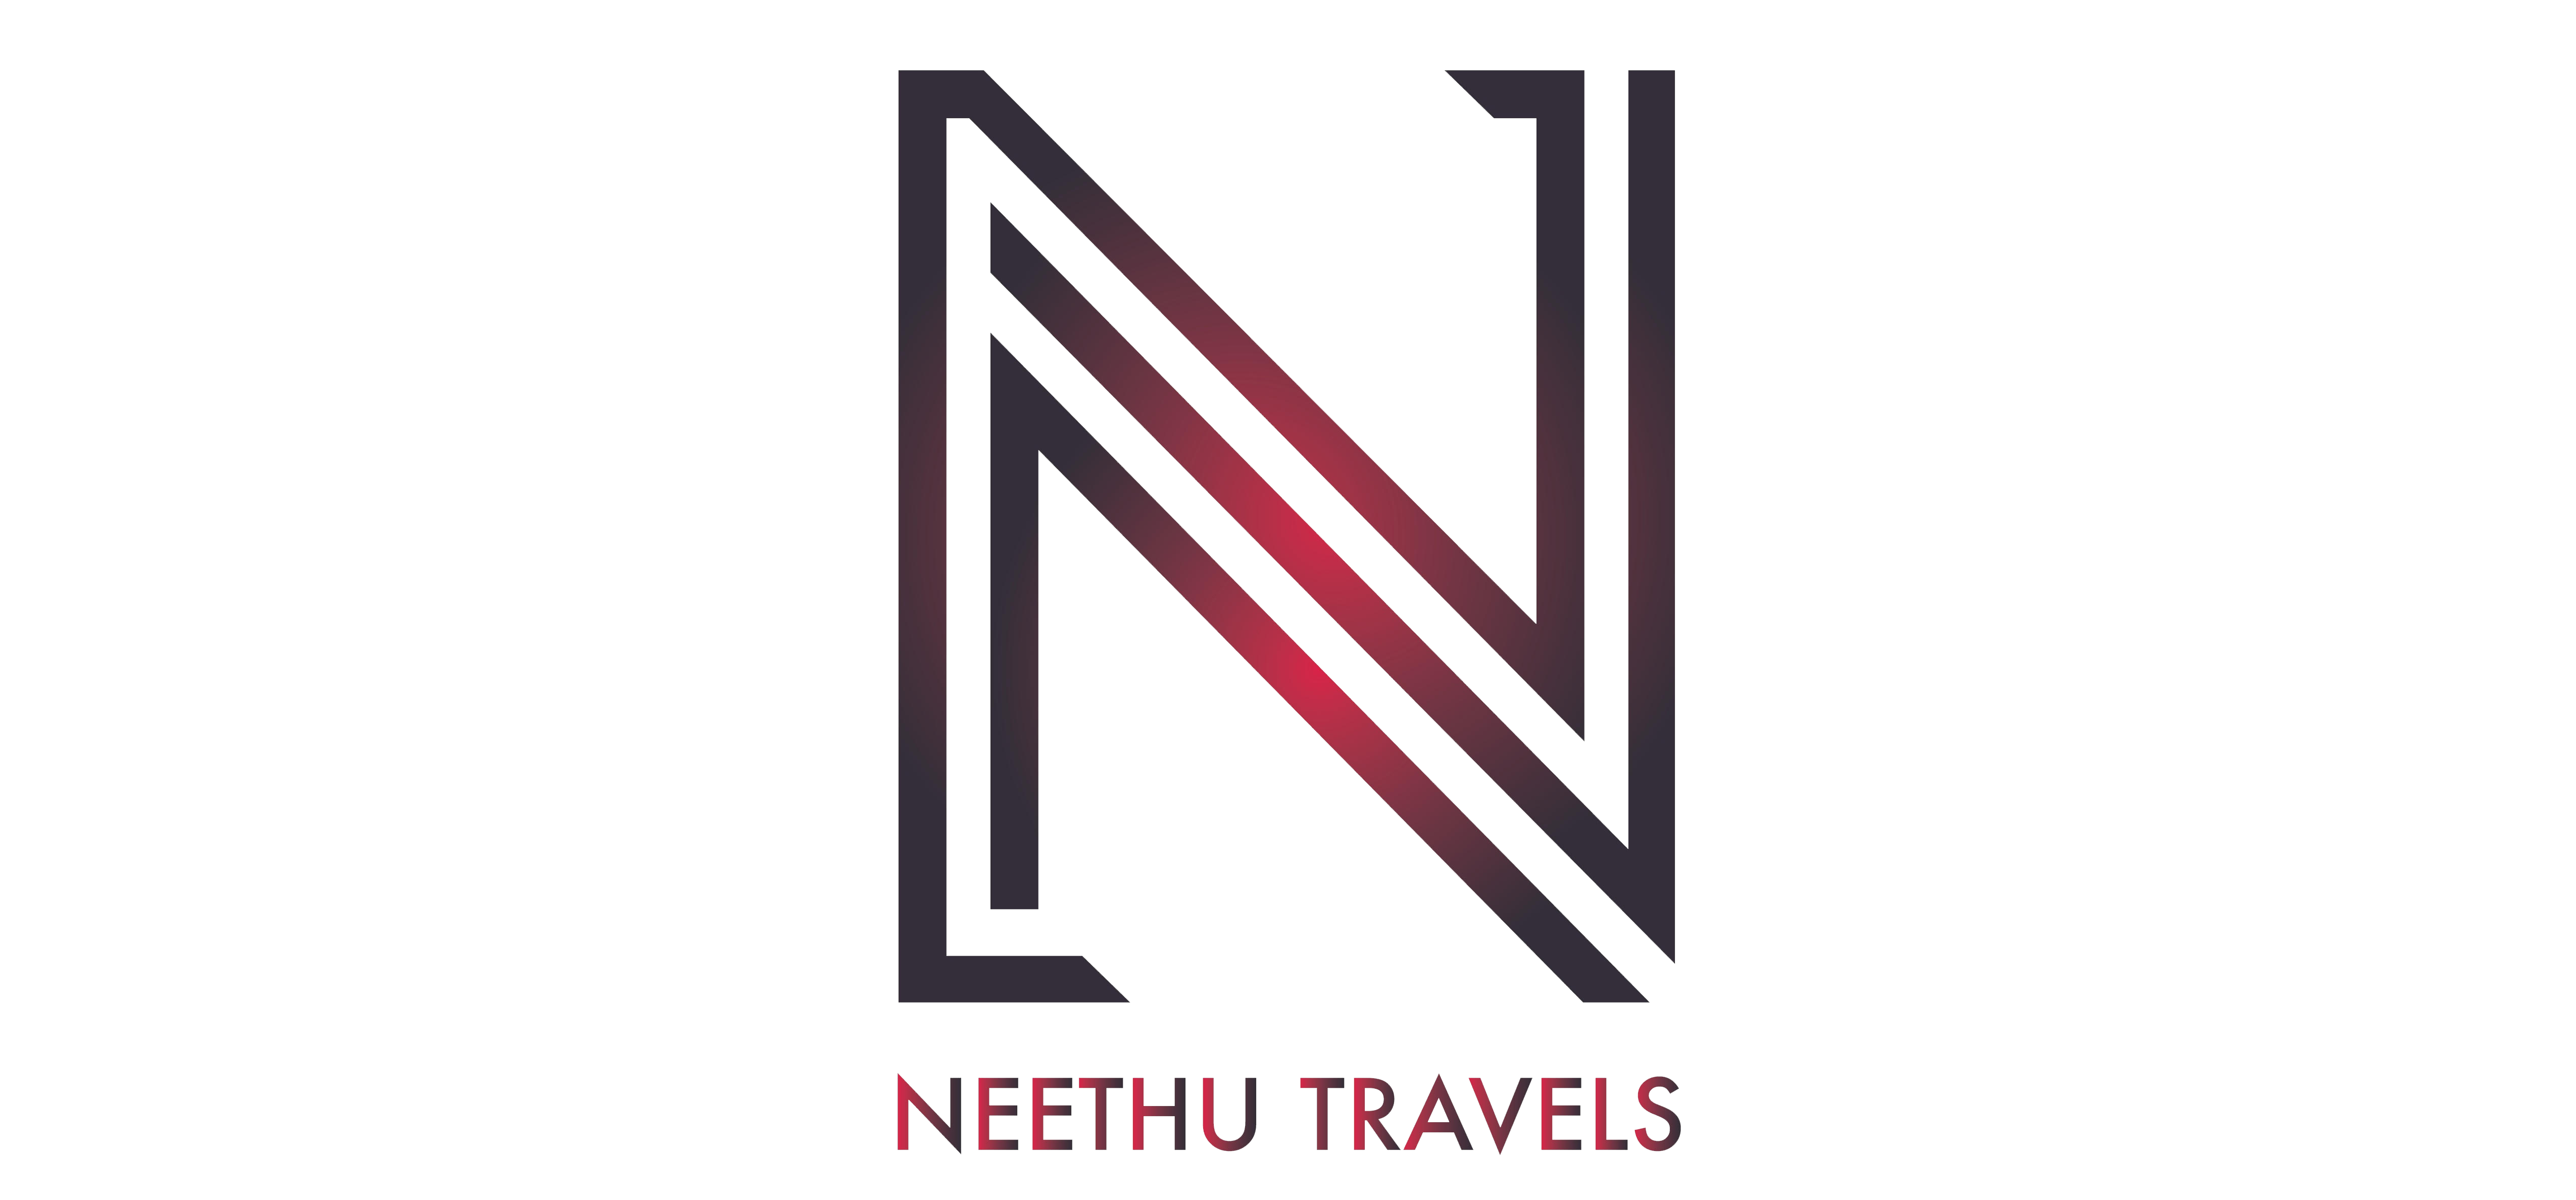 Neethu Travels